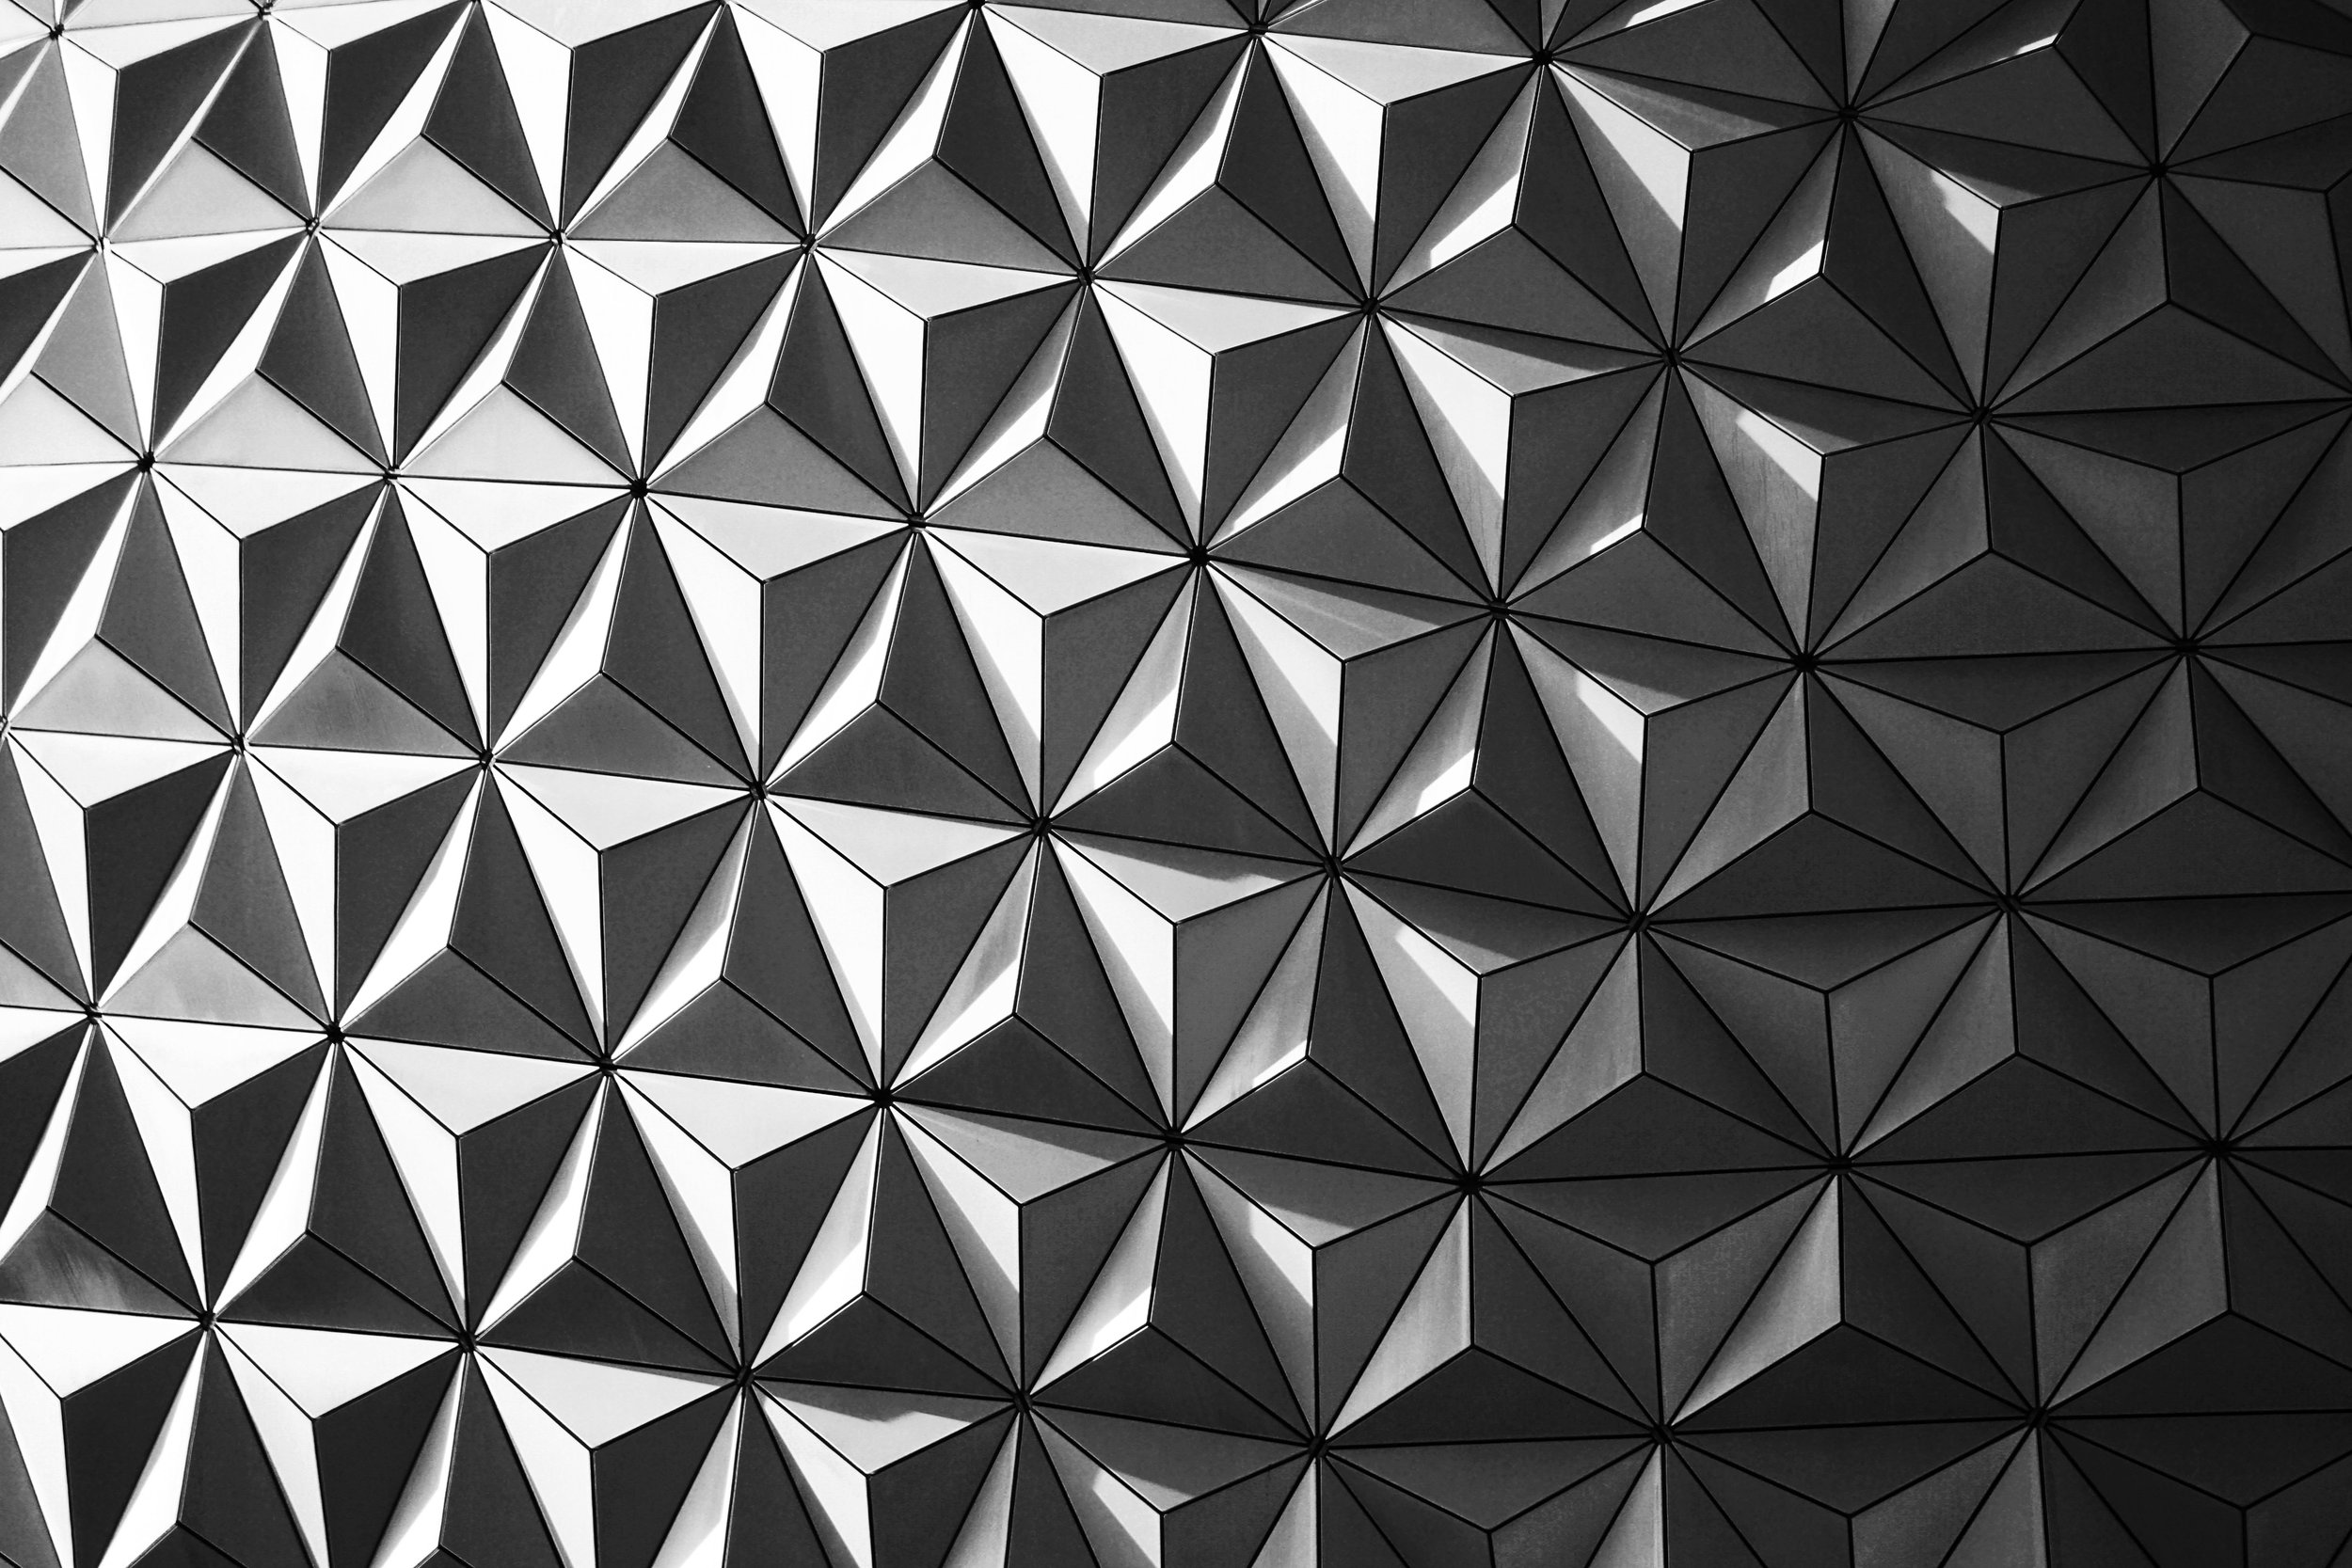 black_and_white_epcot_photography_3.JPG